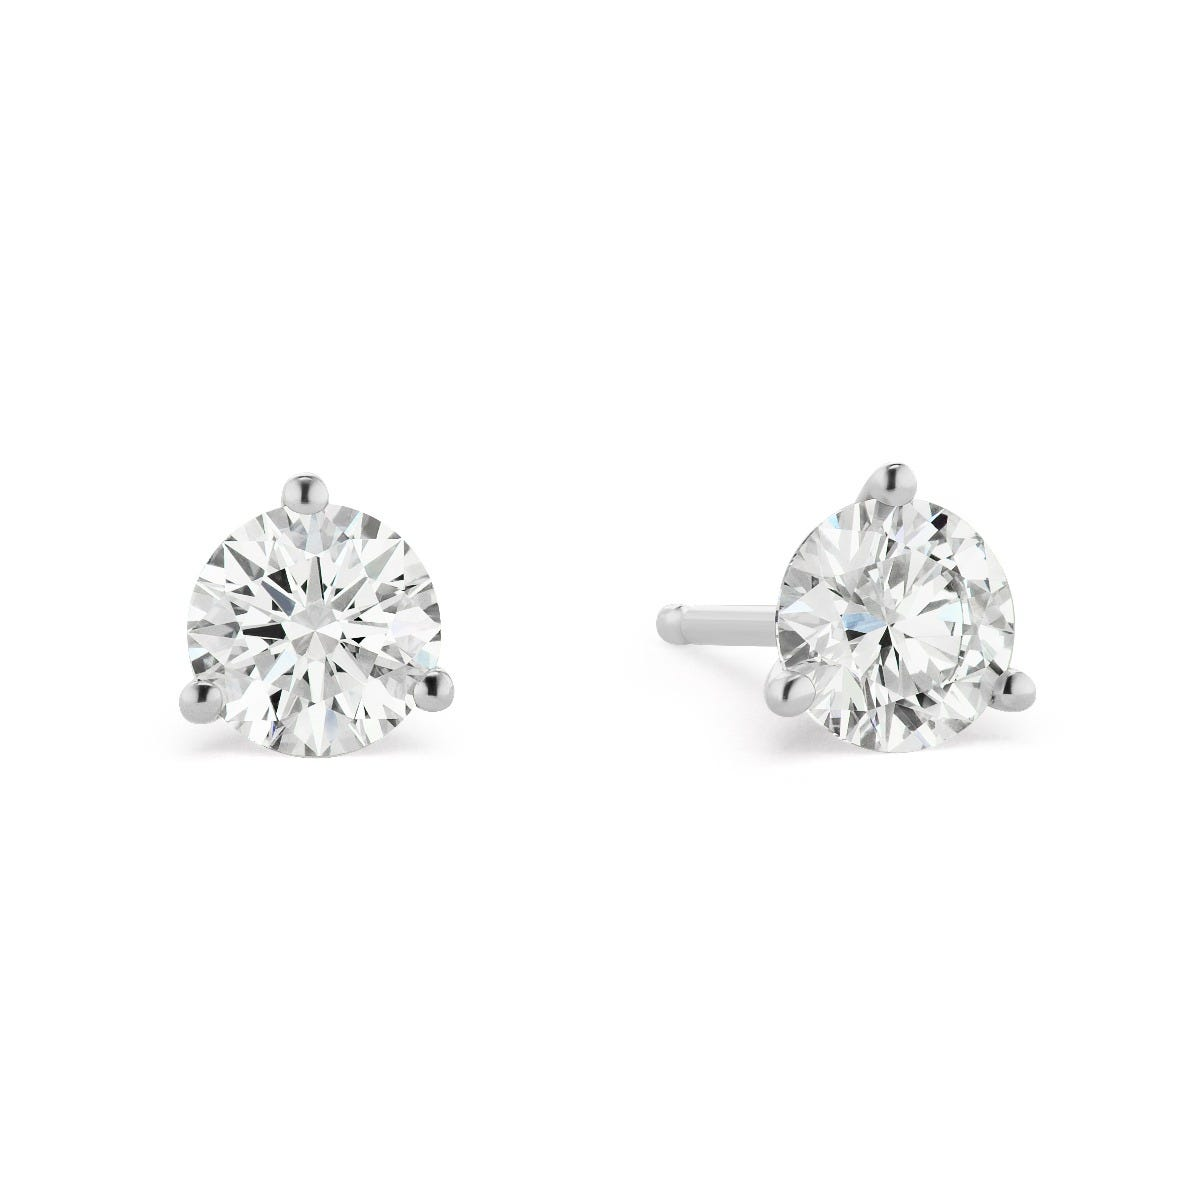 Lab-Crafted 3 Prong 1 1/2ctw. Stud Earrings in 14k White Gold